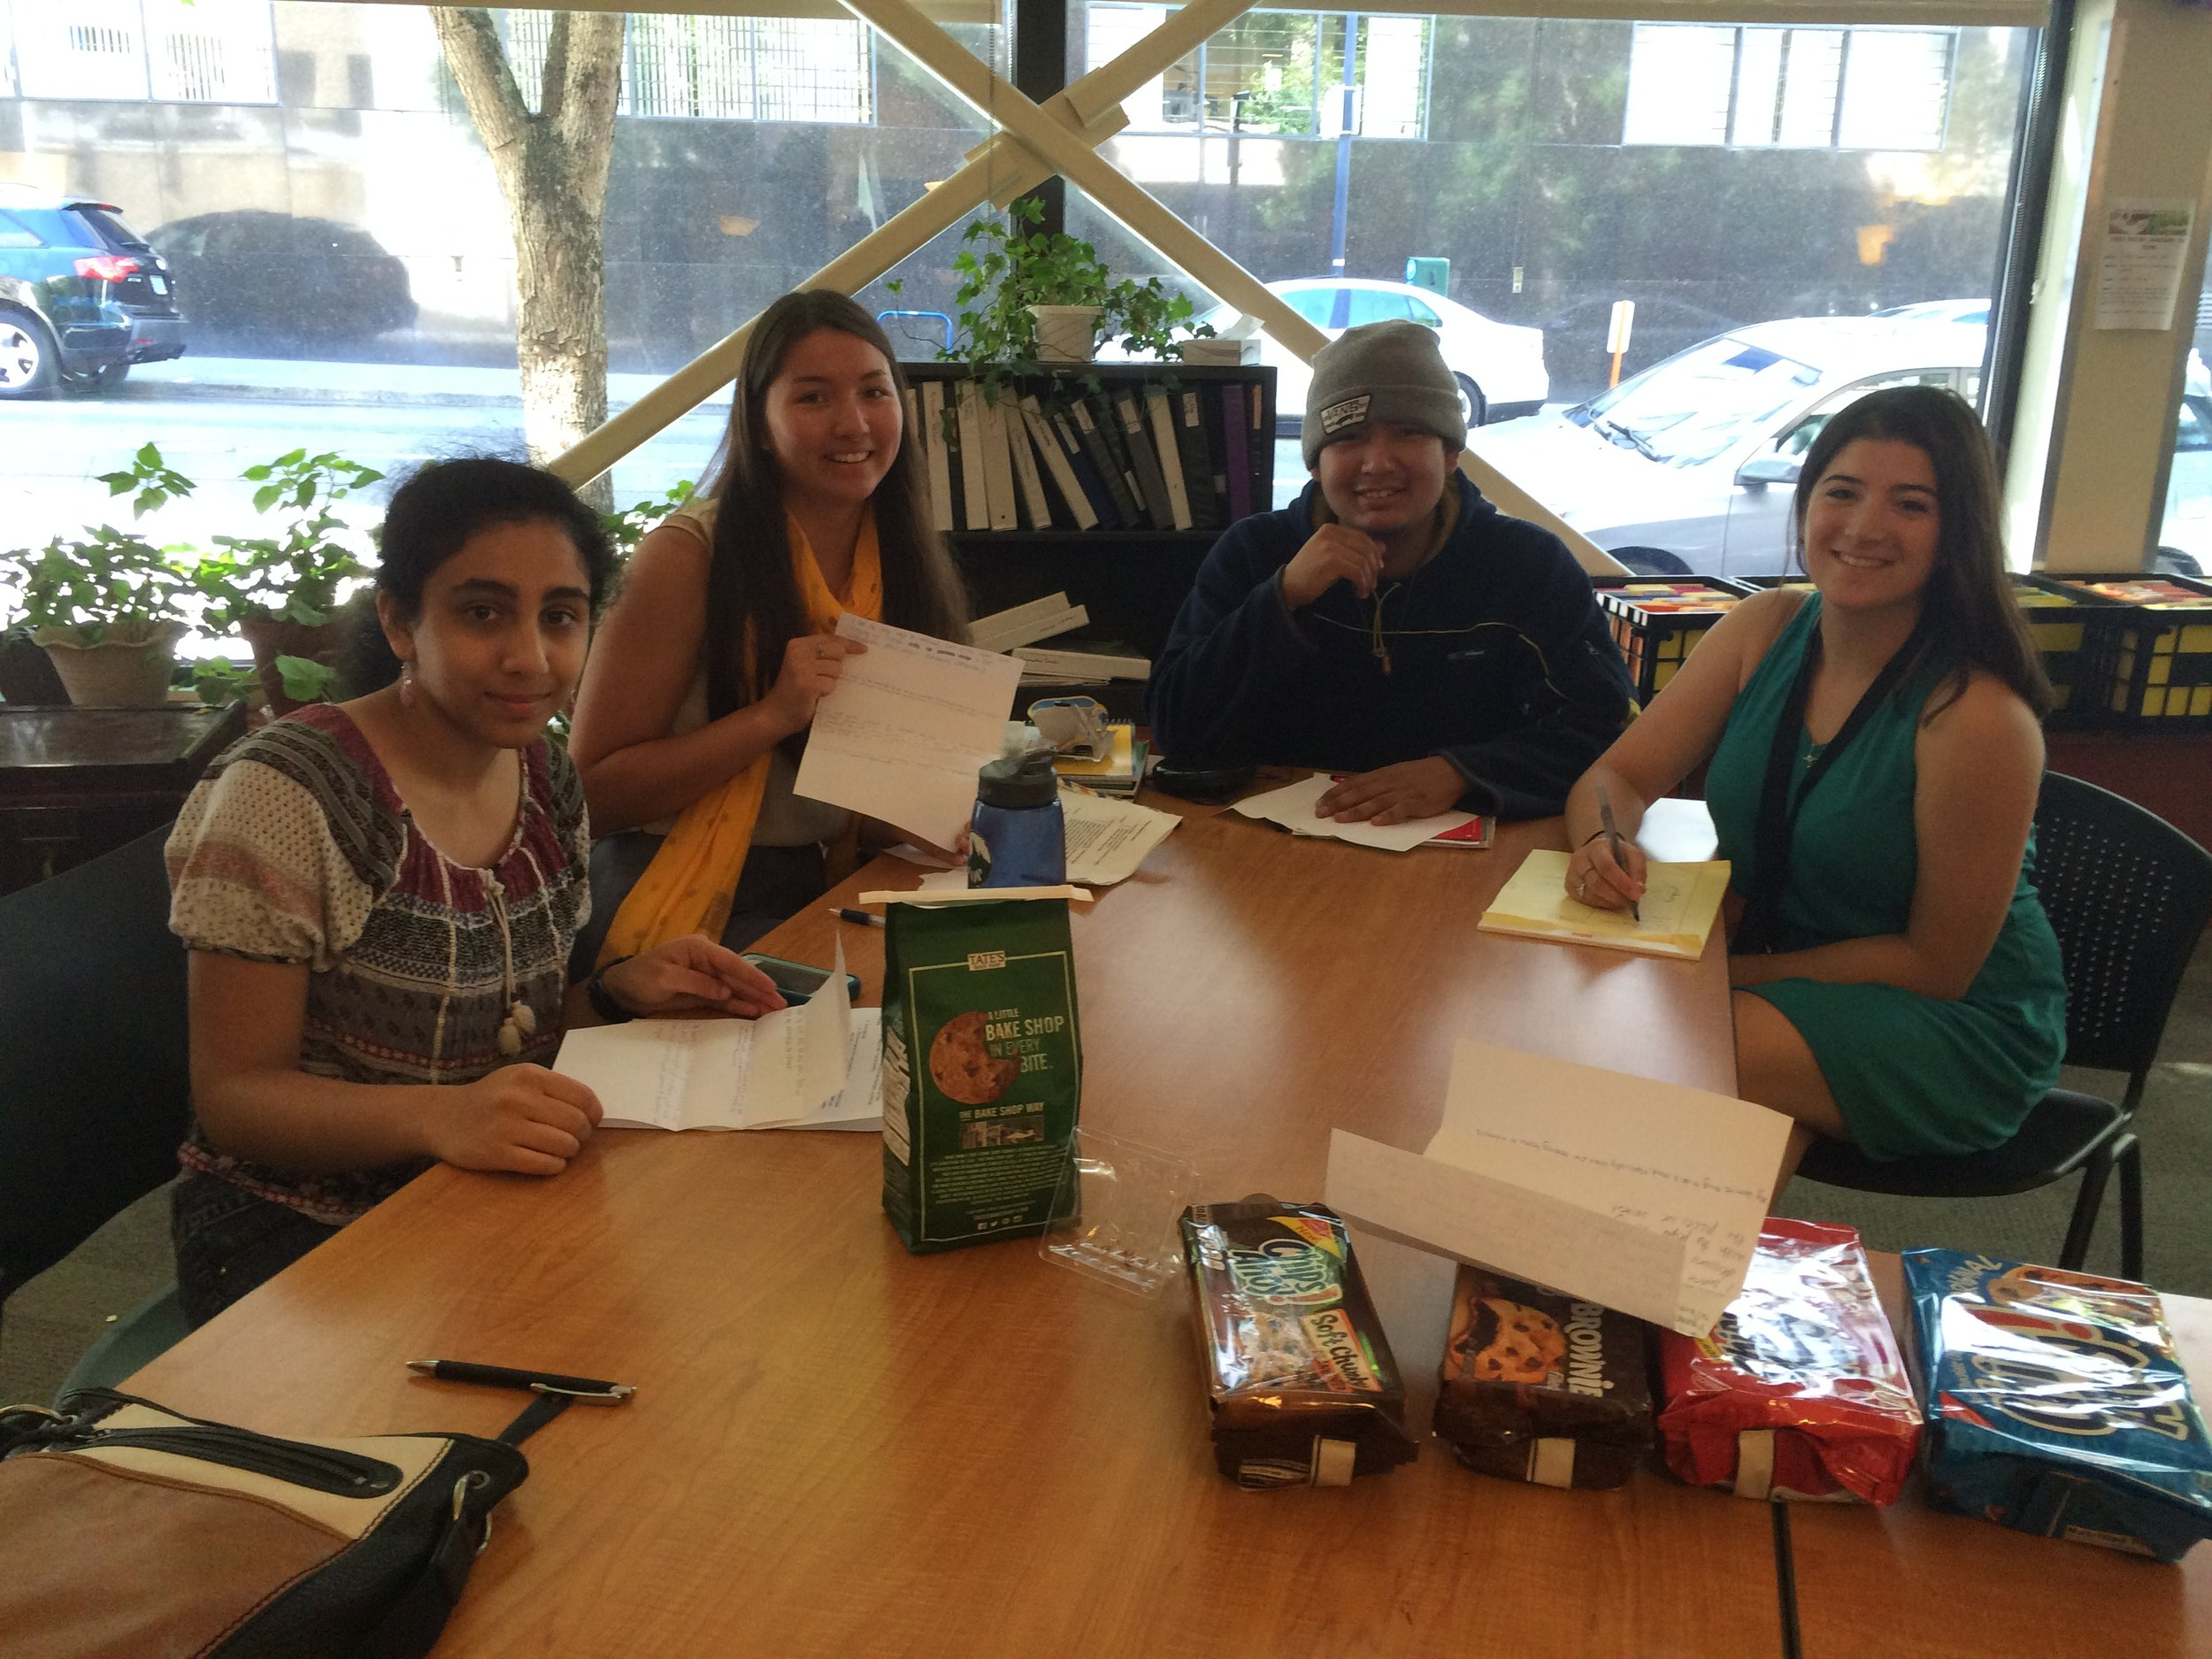 Poeteen volunteers Sheila Panyam and Sophia Mautz with Tyler and Jessica from New Avenues at the Poeteen Workshop! A fun day filled with poetry, cookies, and group writing exercises!